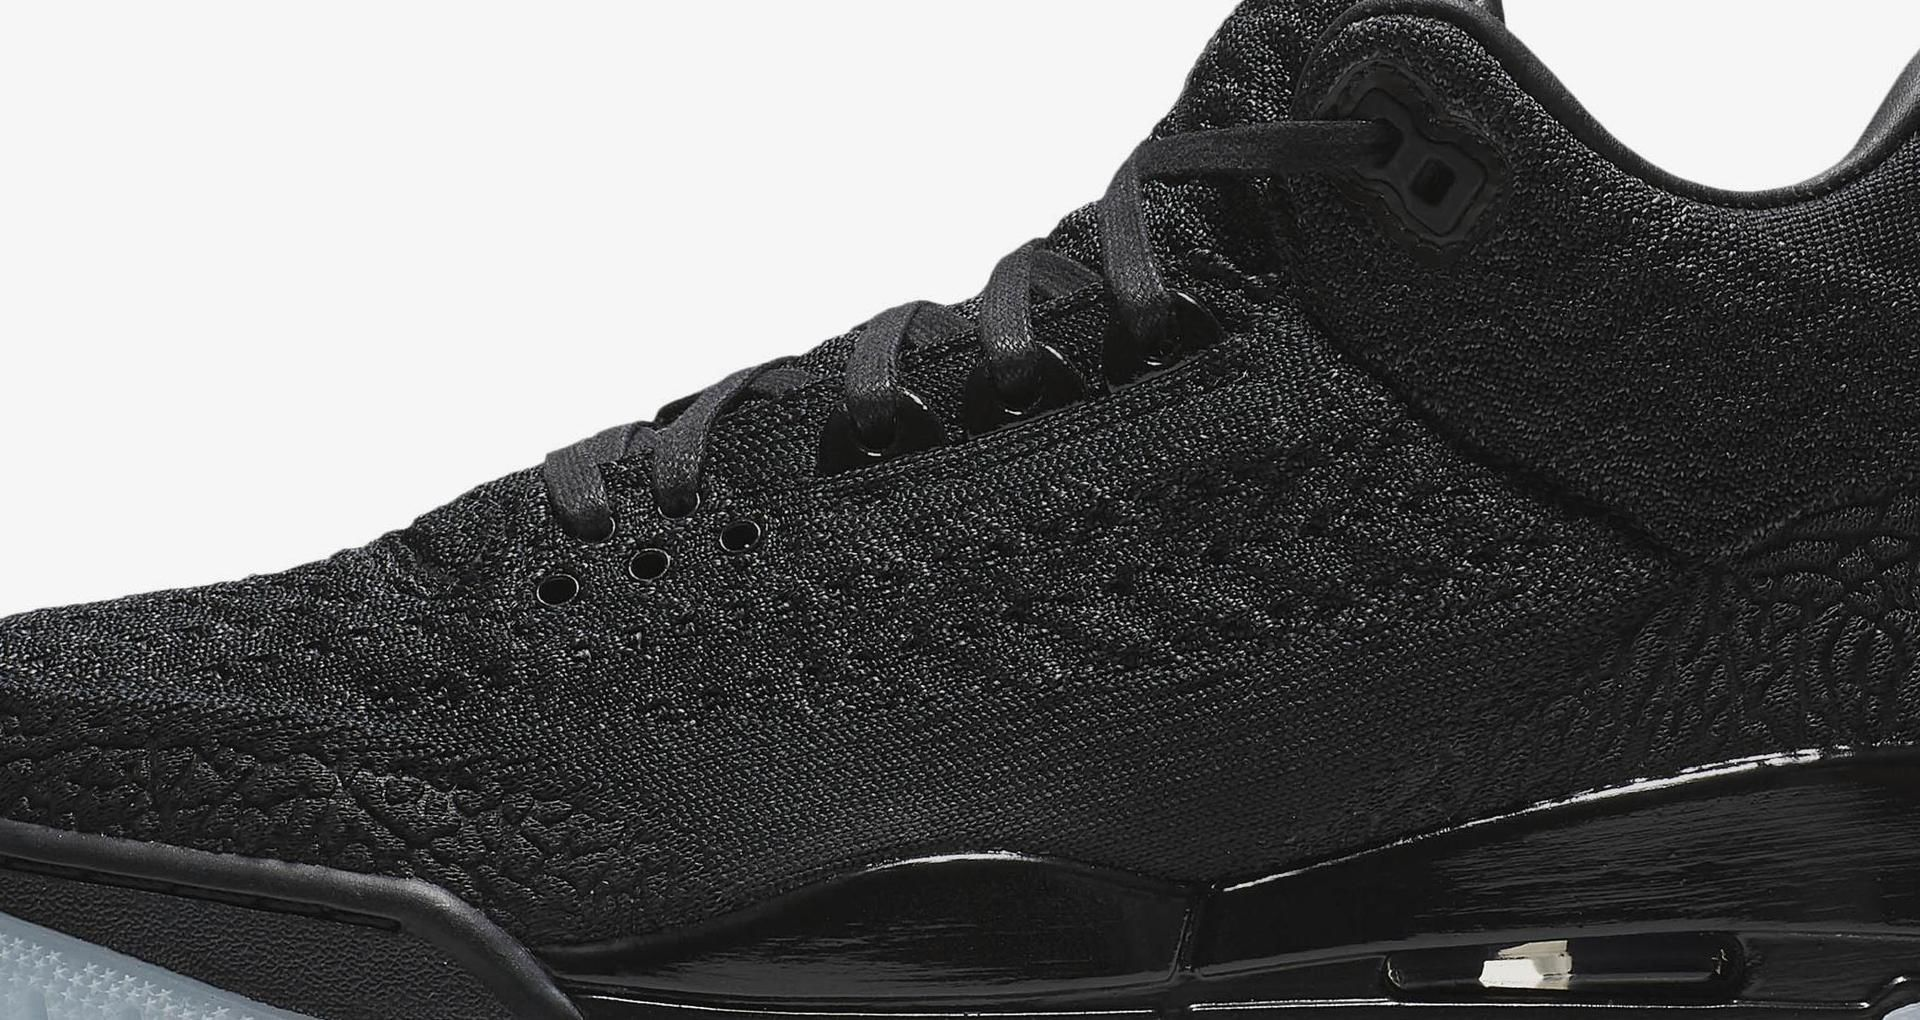 cheap for discount 57883 94bbf Air Jordan 3 Flyknit 'Black & Anthracite' Release Date ...